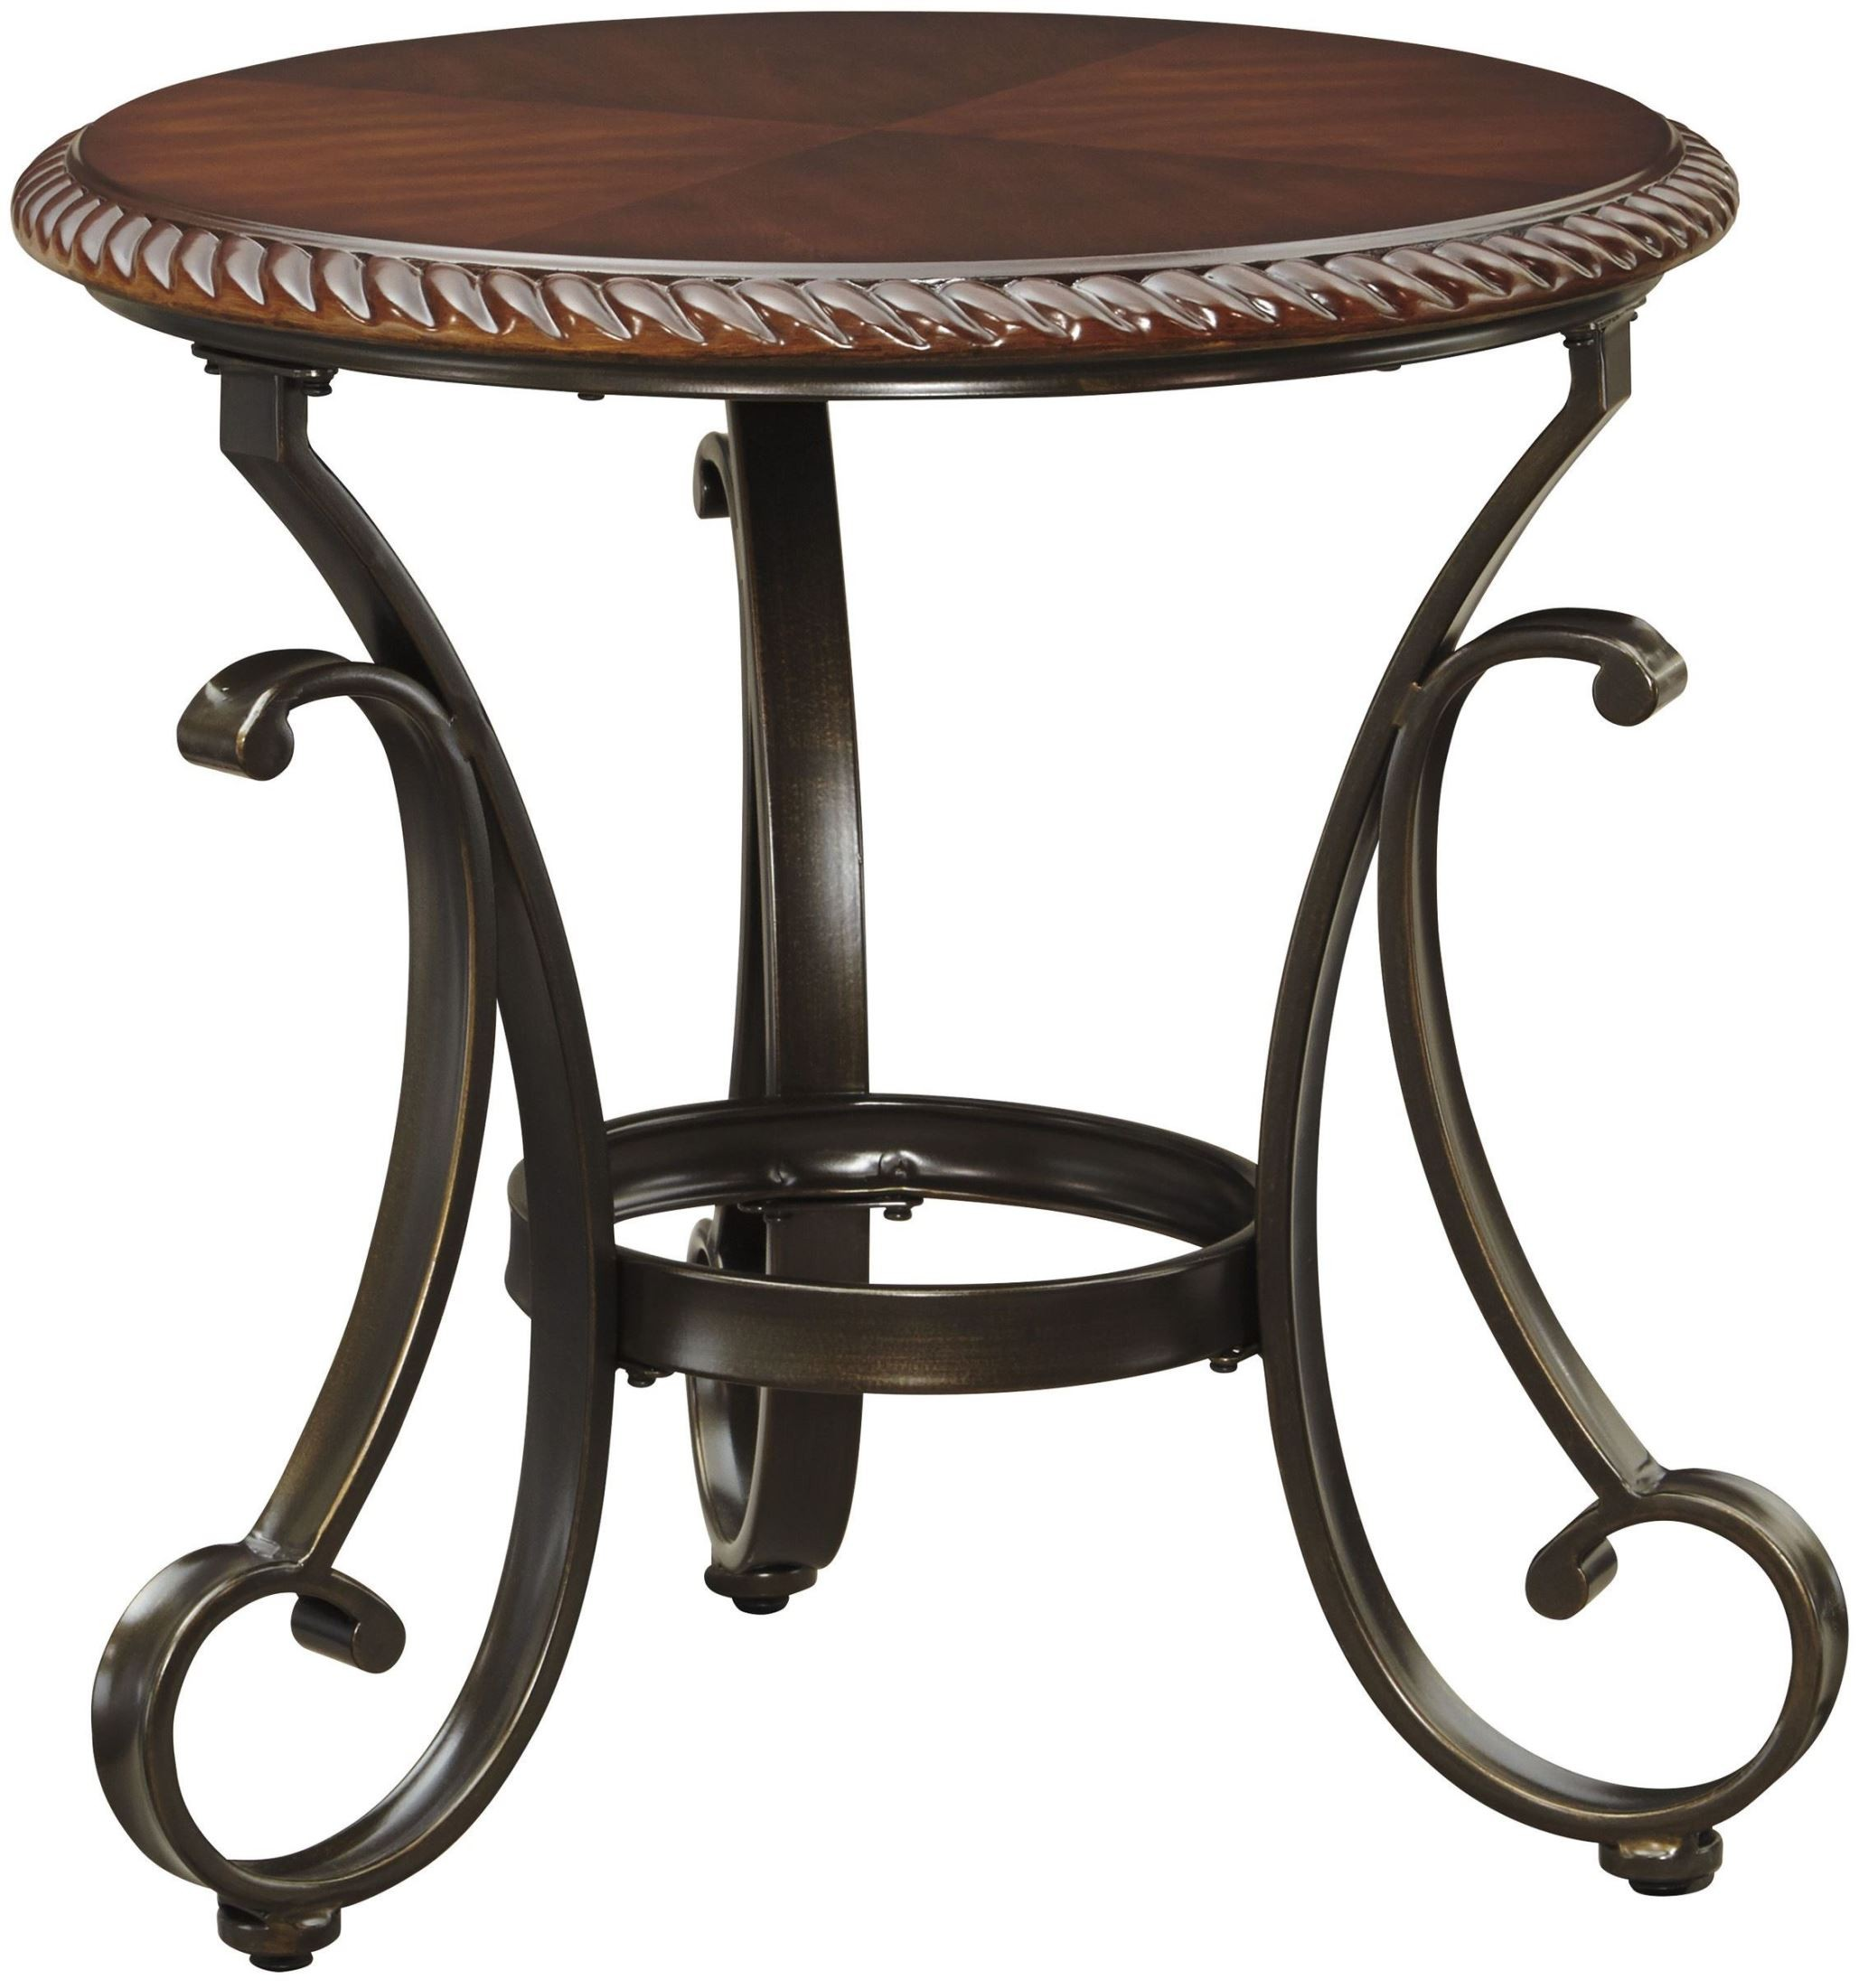 gambrey reddish brown round end table from ashley t626 6. Black Bedroom Furniture Sets. Home Design Ideas